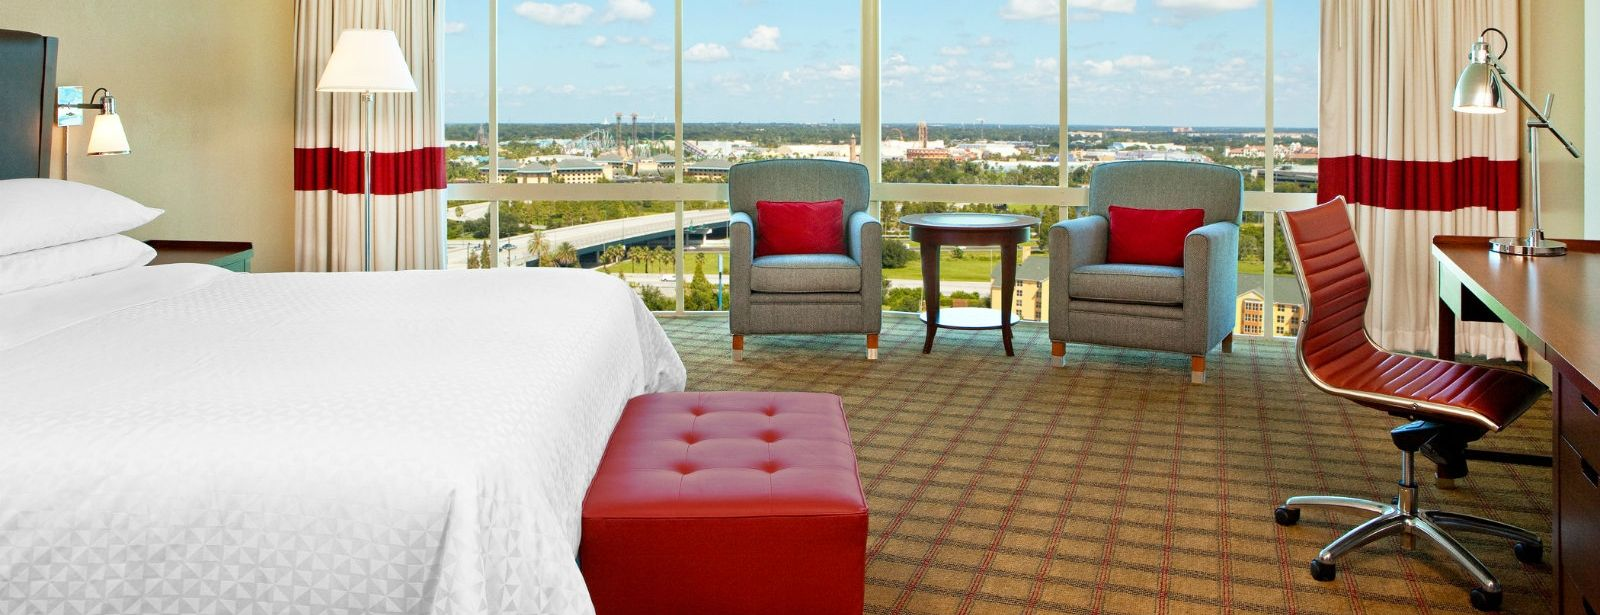 Orlando Accommodations - Deluxe Studio King